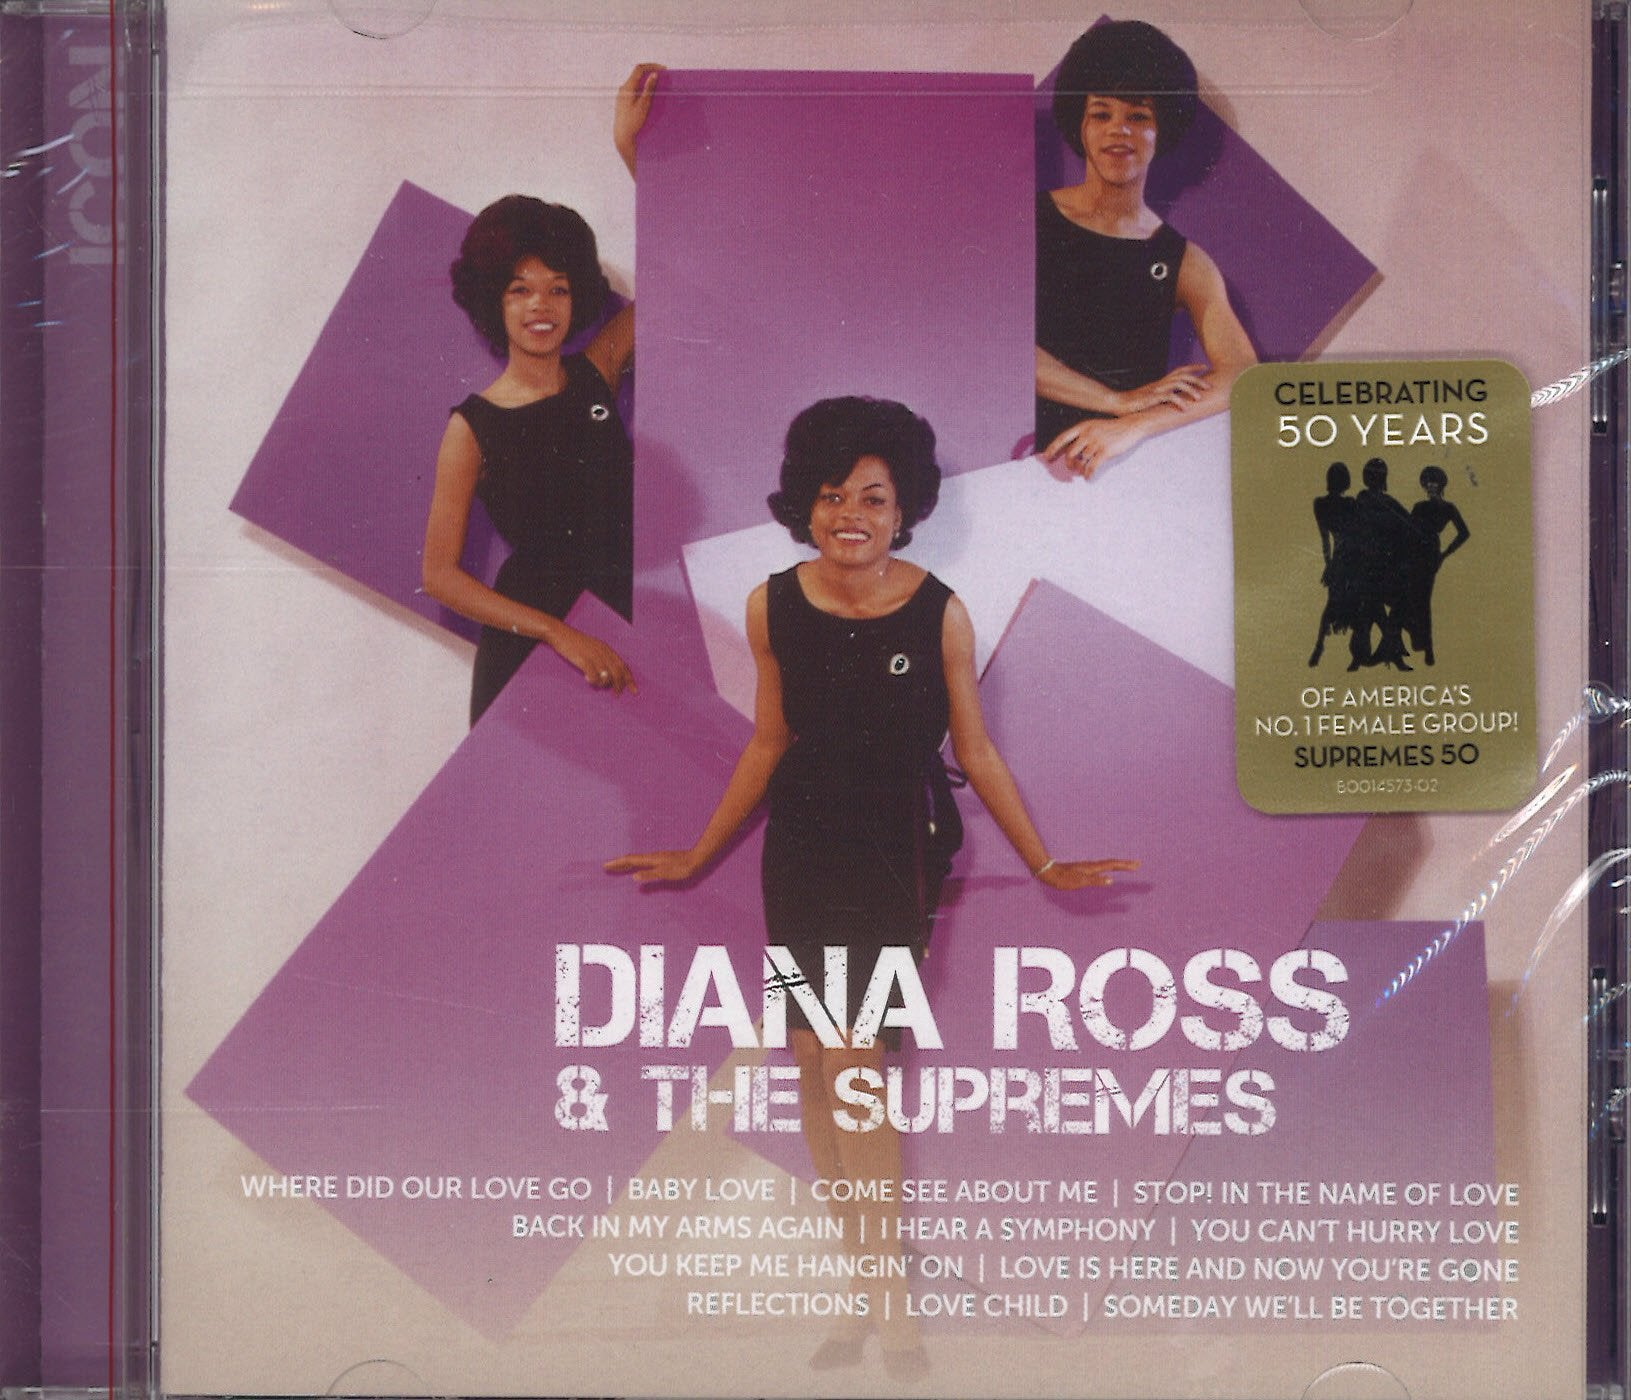 Diana Ross & The Supremes Icon